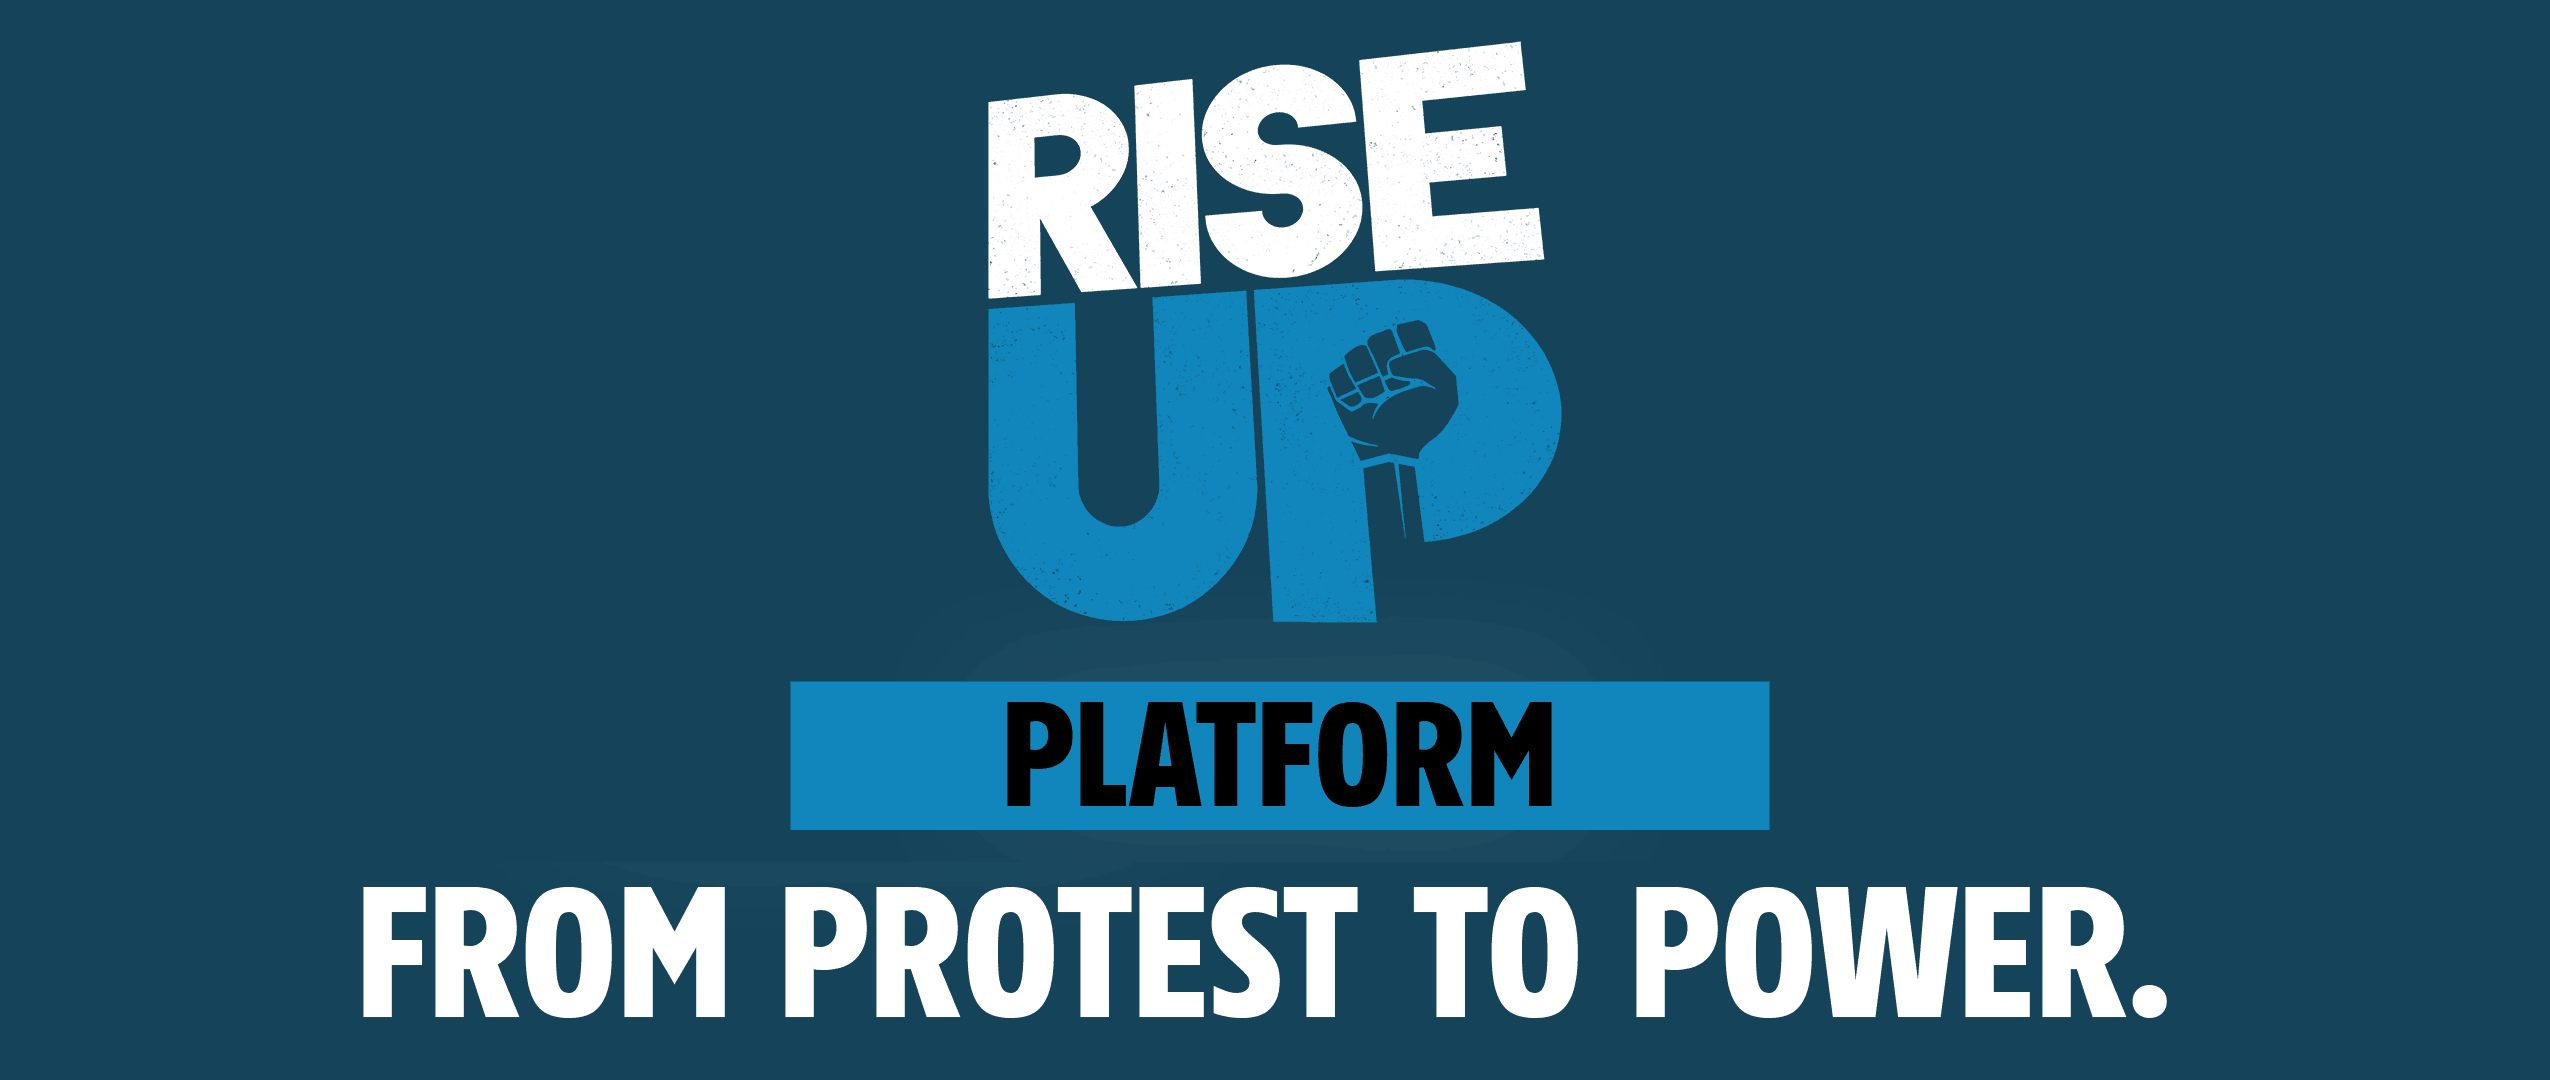 Rise Up: From Protest to Power Platform